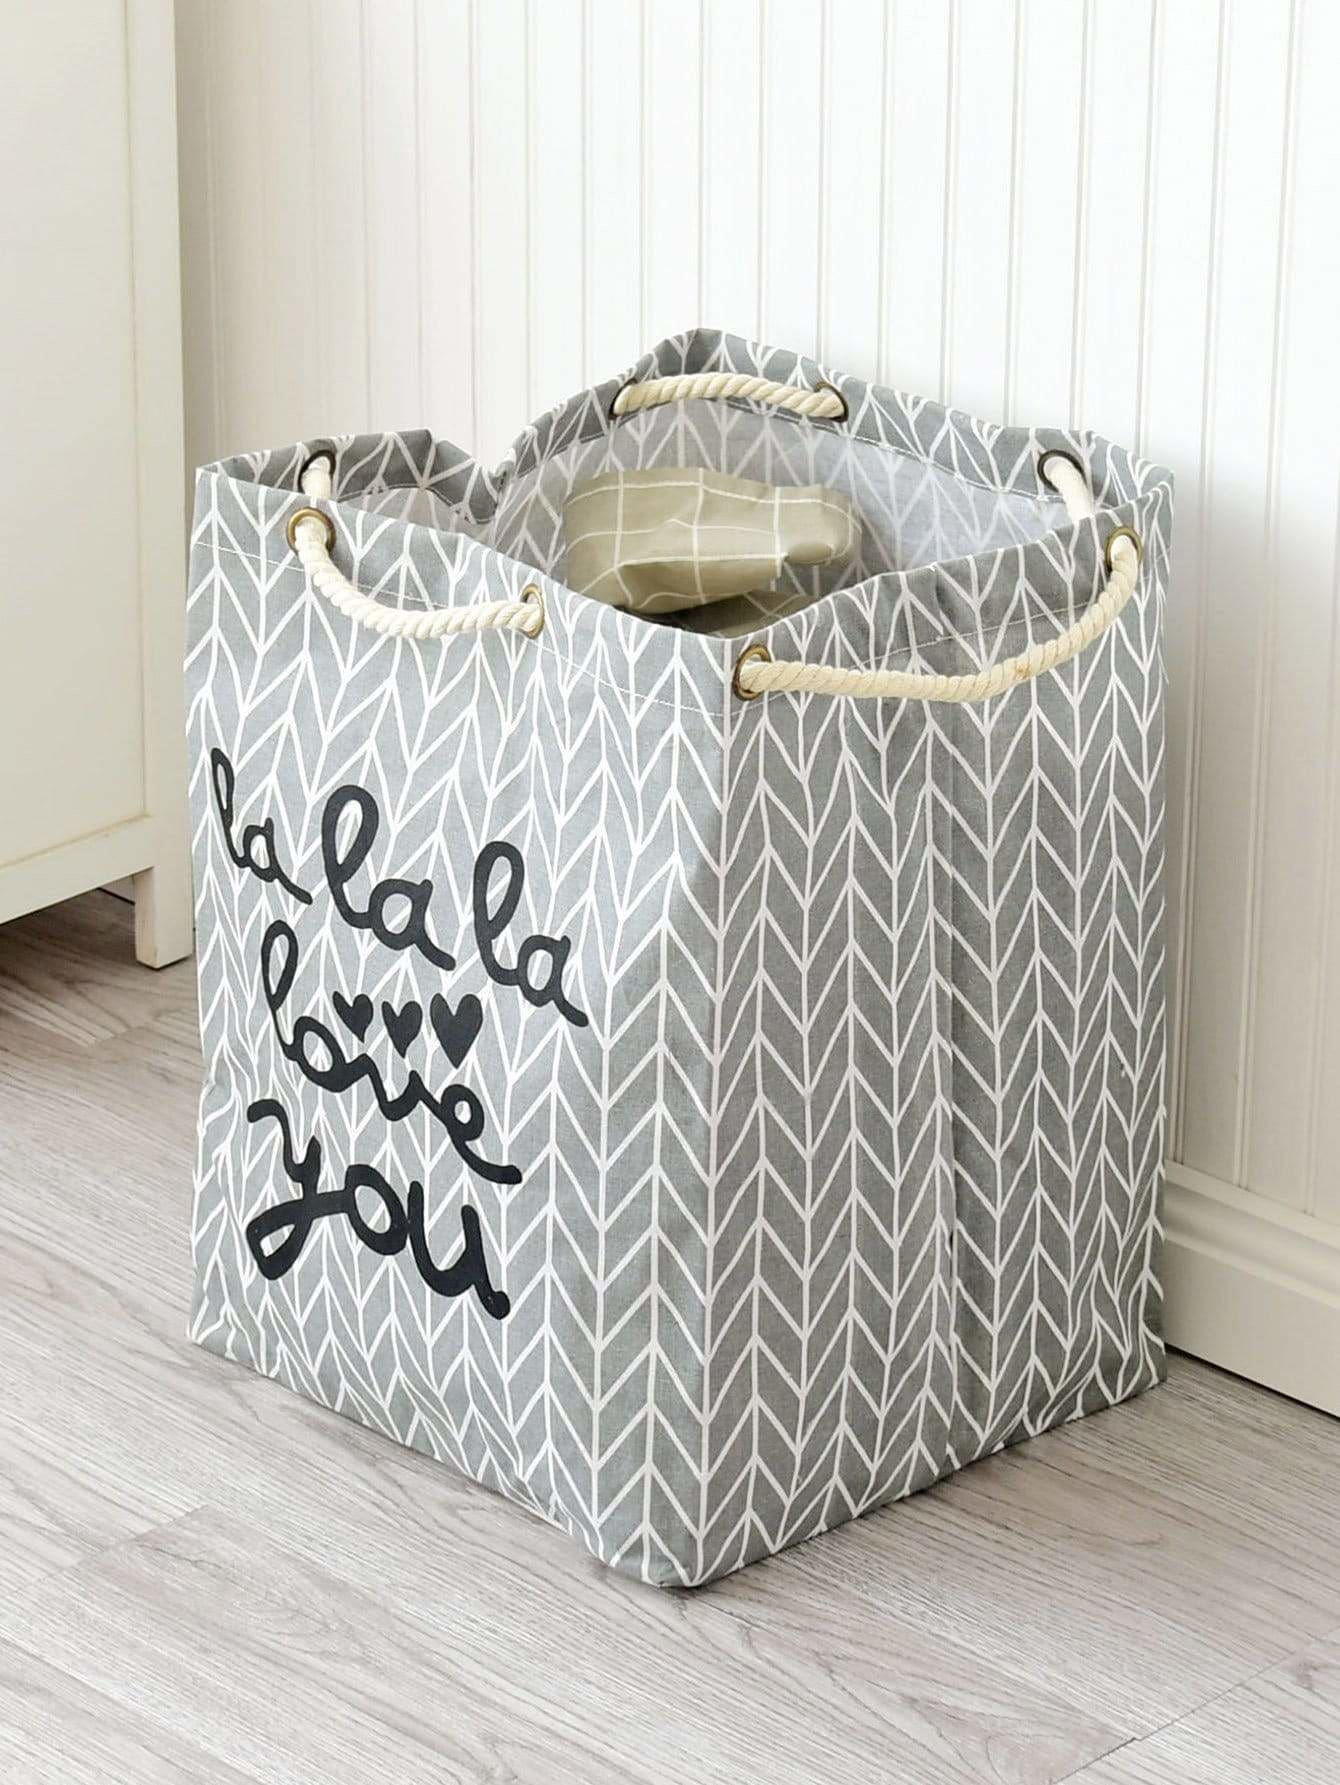 Geometric Print Square Laundry Hamper - Storage & Organization